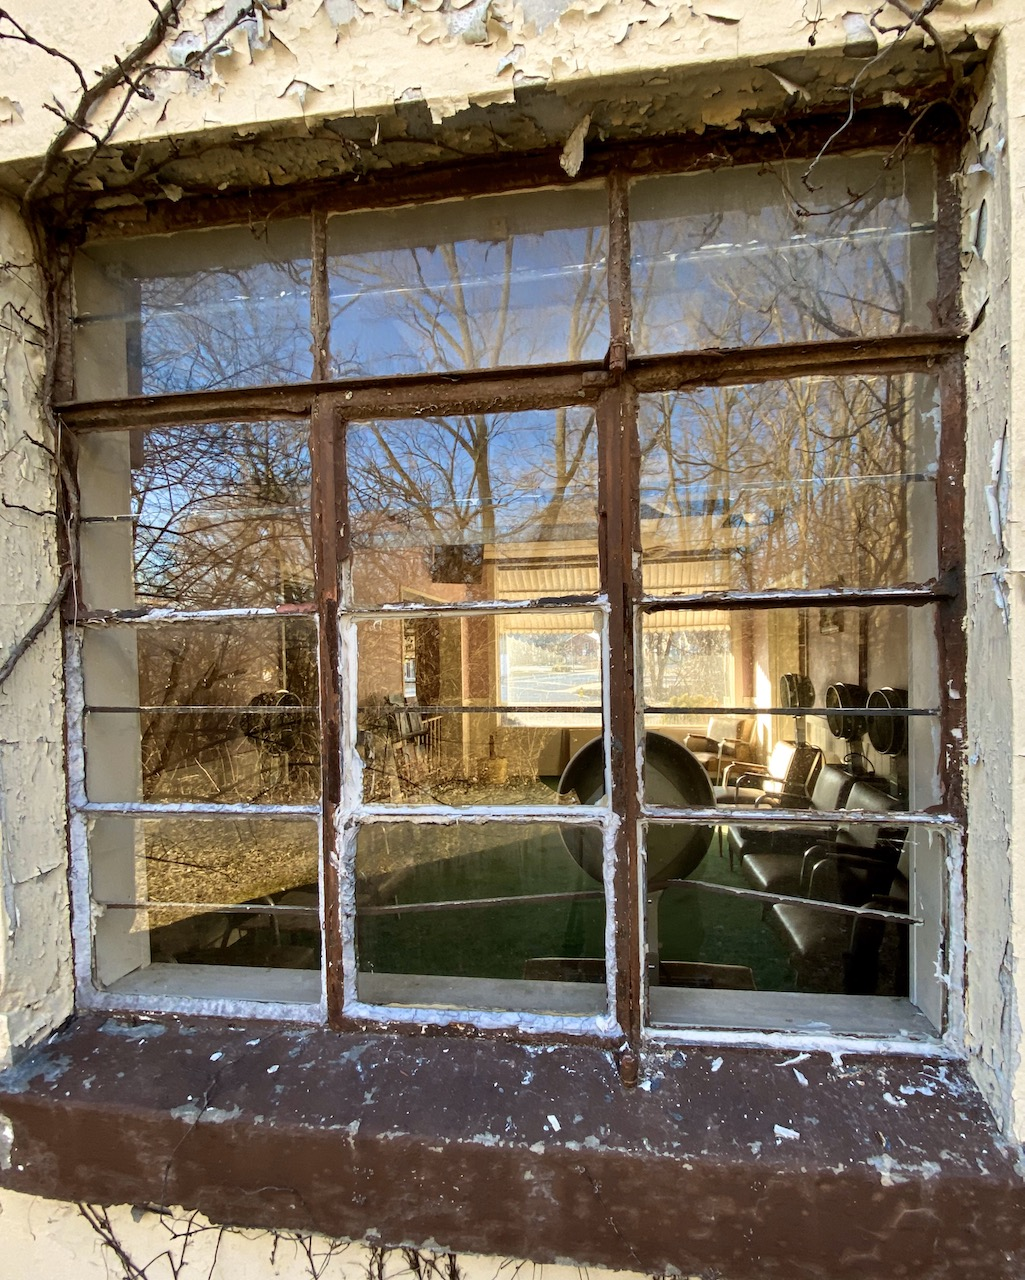 Looking Inside A Window Into An Abandoned Hair Salon